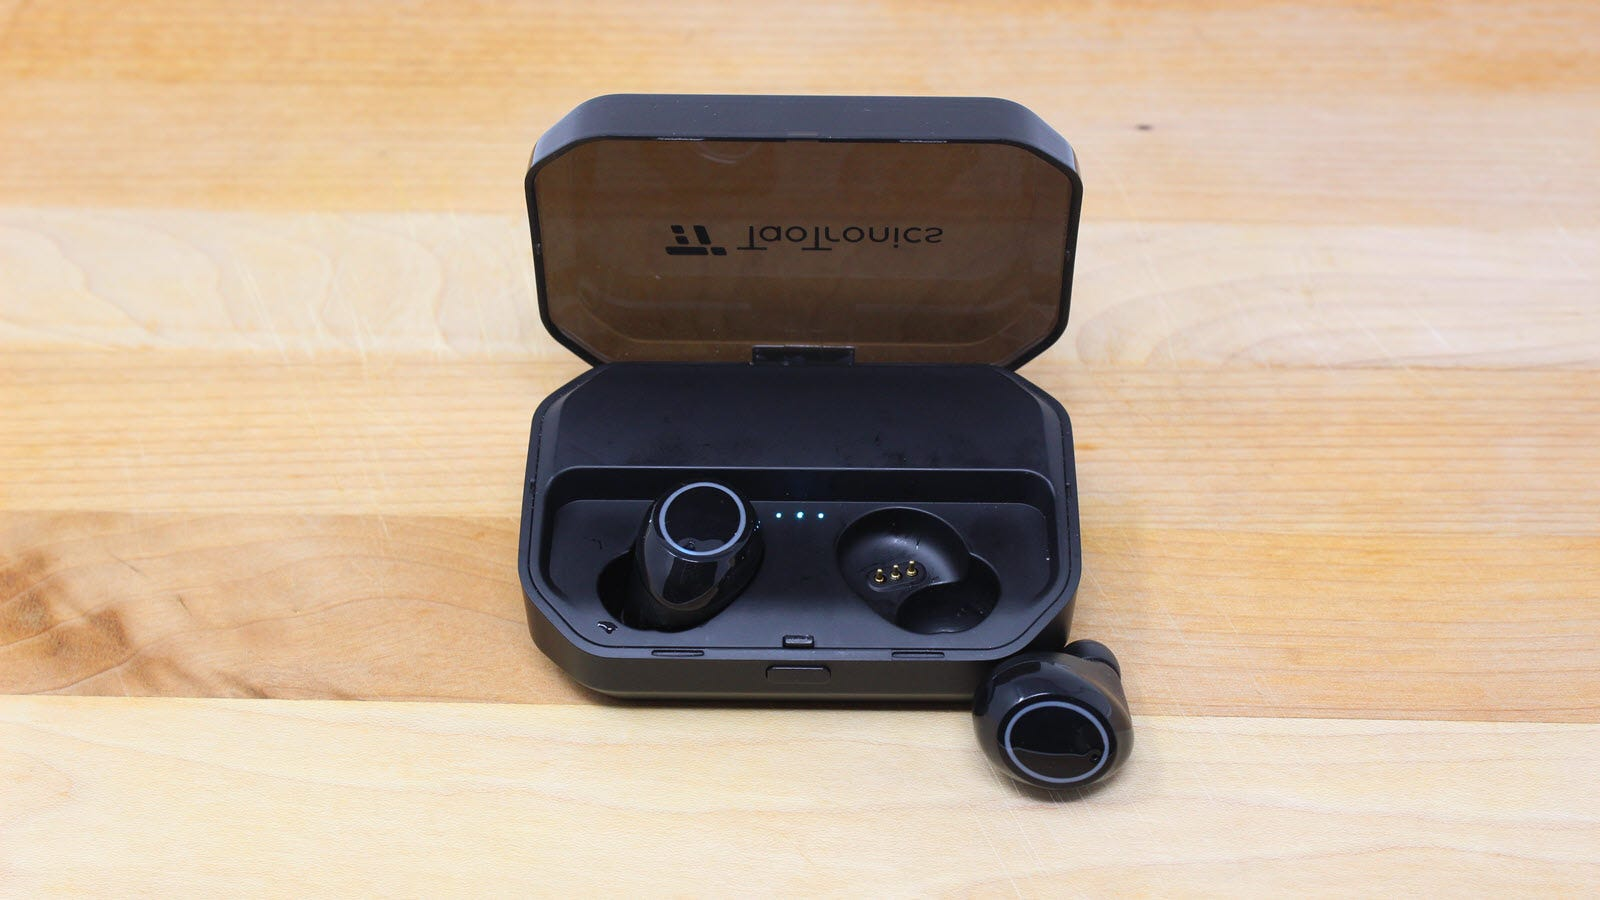 TaoTronics earbuds, with one earbud out of the case.